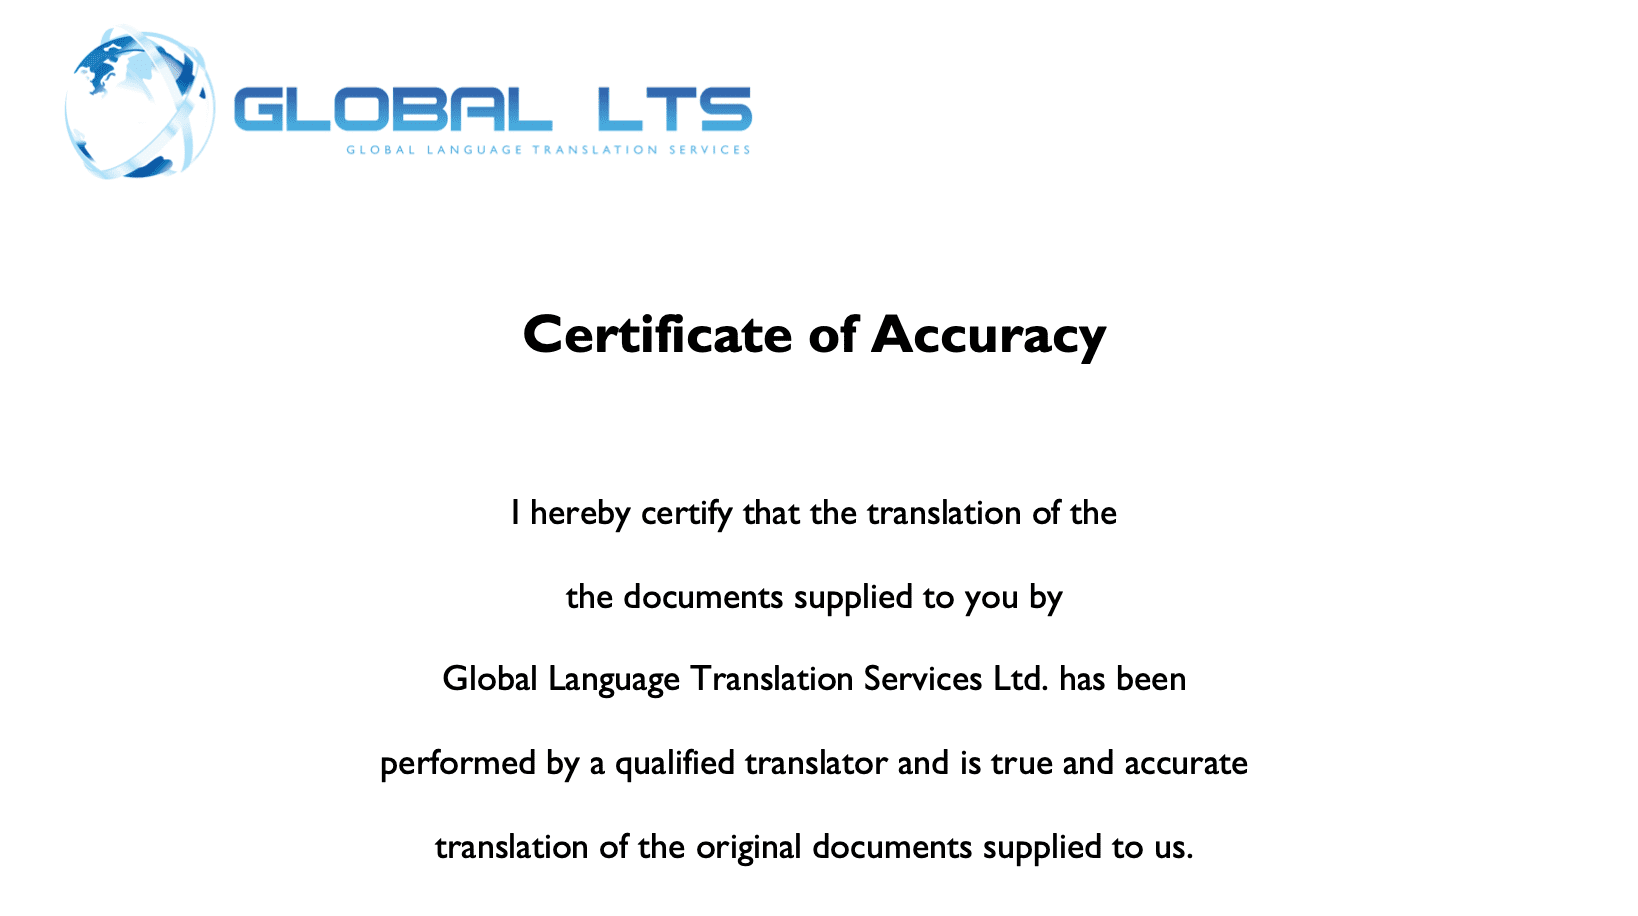 translation documents certified certificate accuracy translator accurate translated professional certification example global translations guarantee representation were